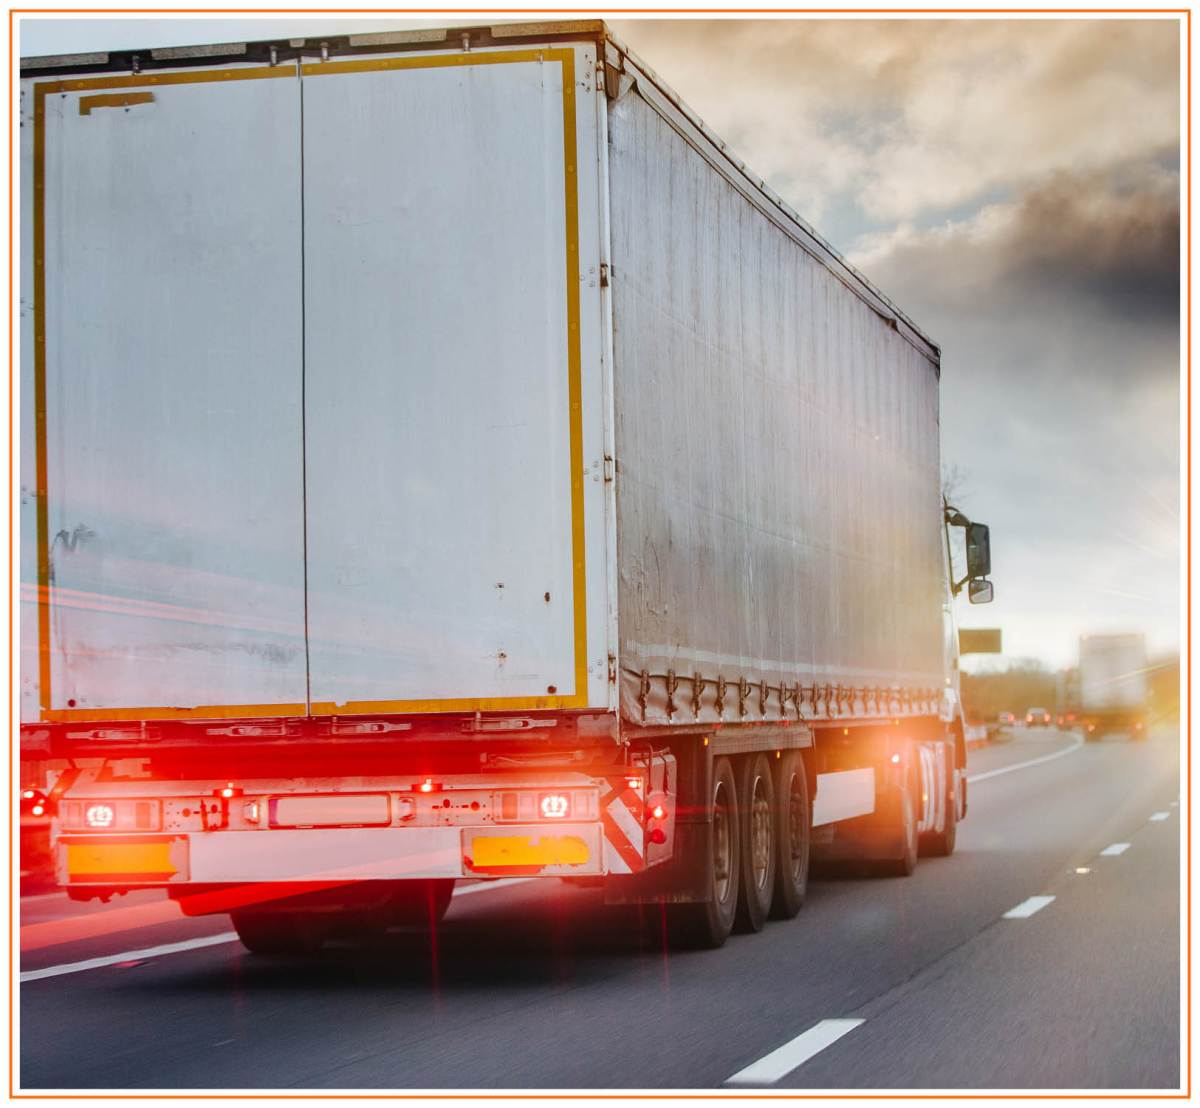 https://i0.wp.com/haultech.co.uk/wp-content/uploads/2021/01/HaulTech-helping-Hauliers-to-Future-Proof-their-Business-during-Lockdown-3.0.jpg?fit=1200%2C1108&ssl=1